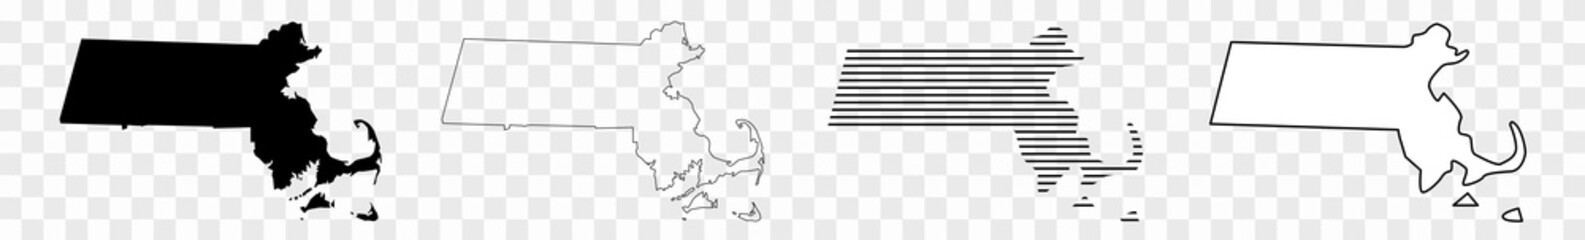 Massachusetts Map Black | State Border | United States | US America | Transparent Isolated | Variations